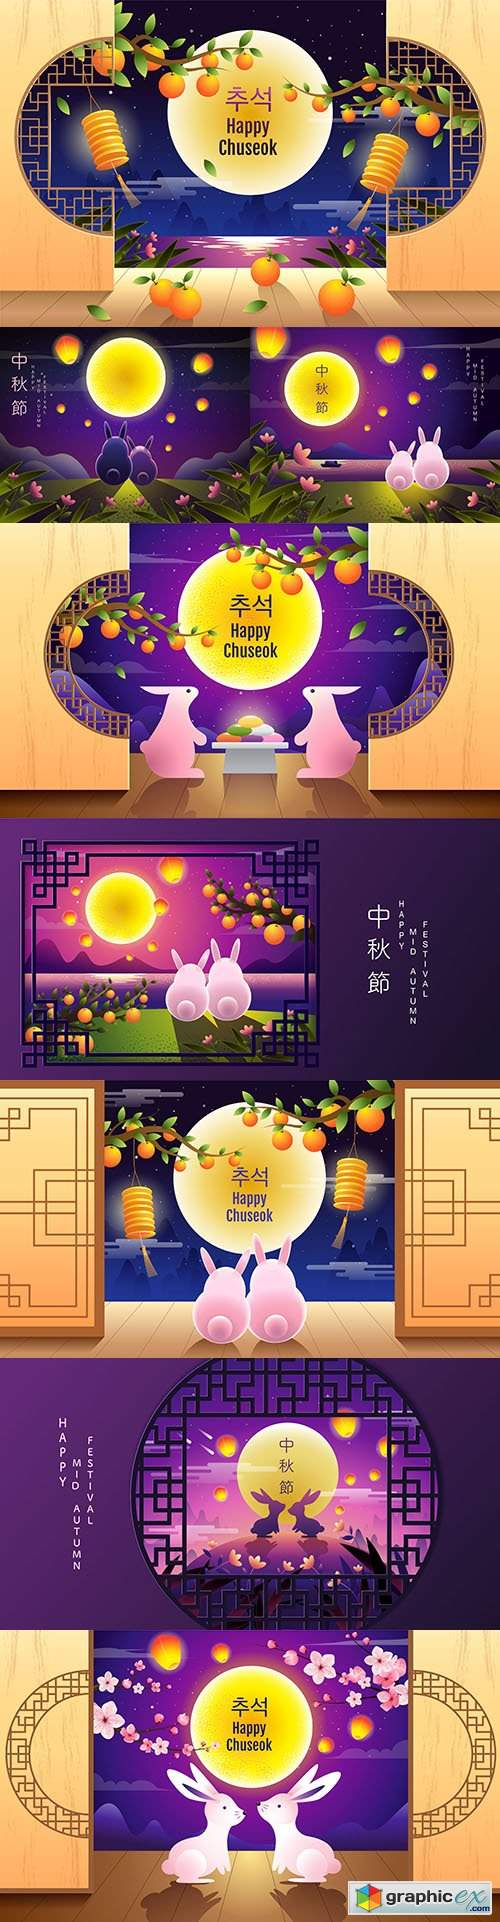 Happy Chuseok lunar holiday of autumn decorative illustrations